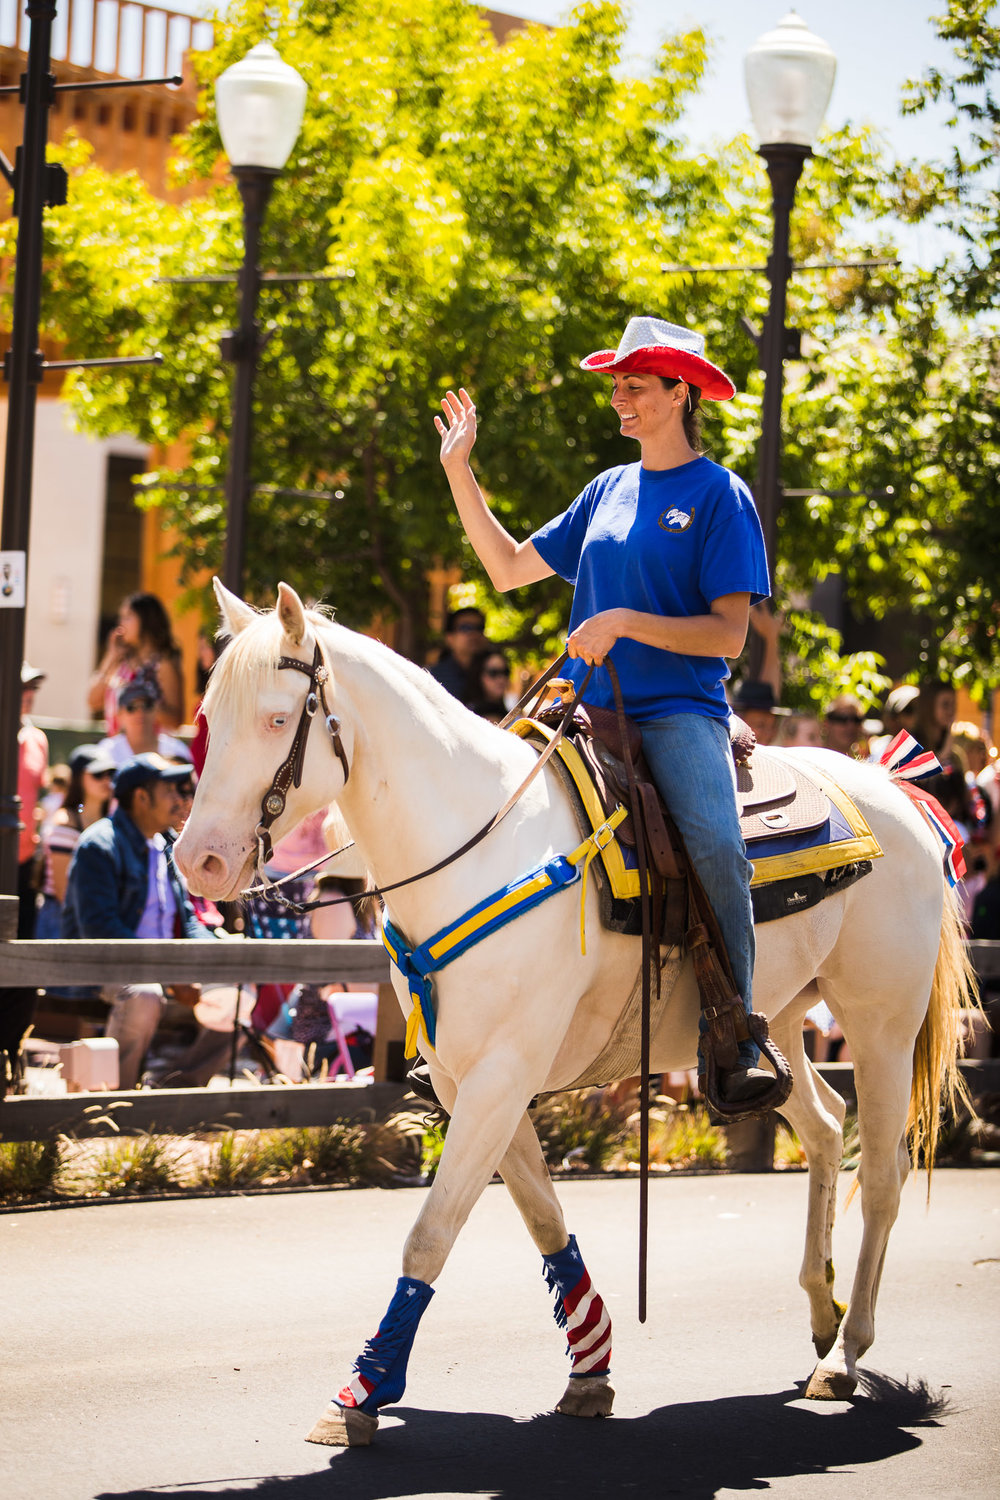 Archer_Inspired_Photography_Morgan_Hill_California_4th_of_july_parade-158.jpg